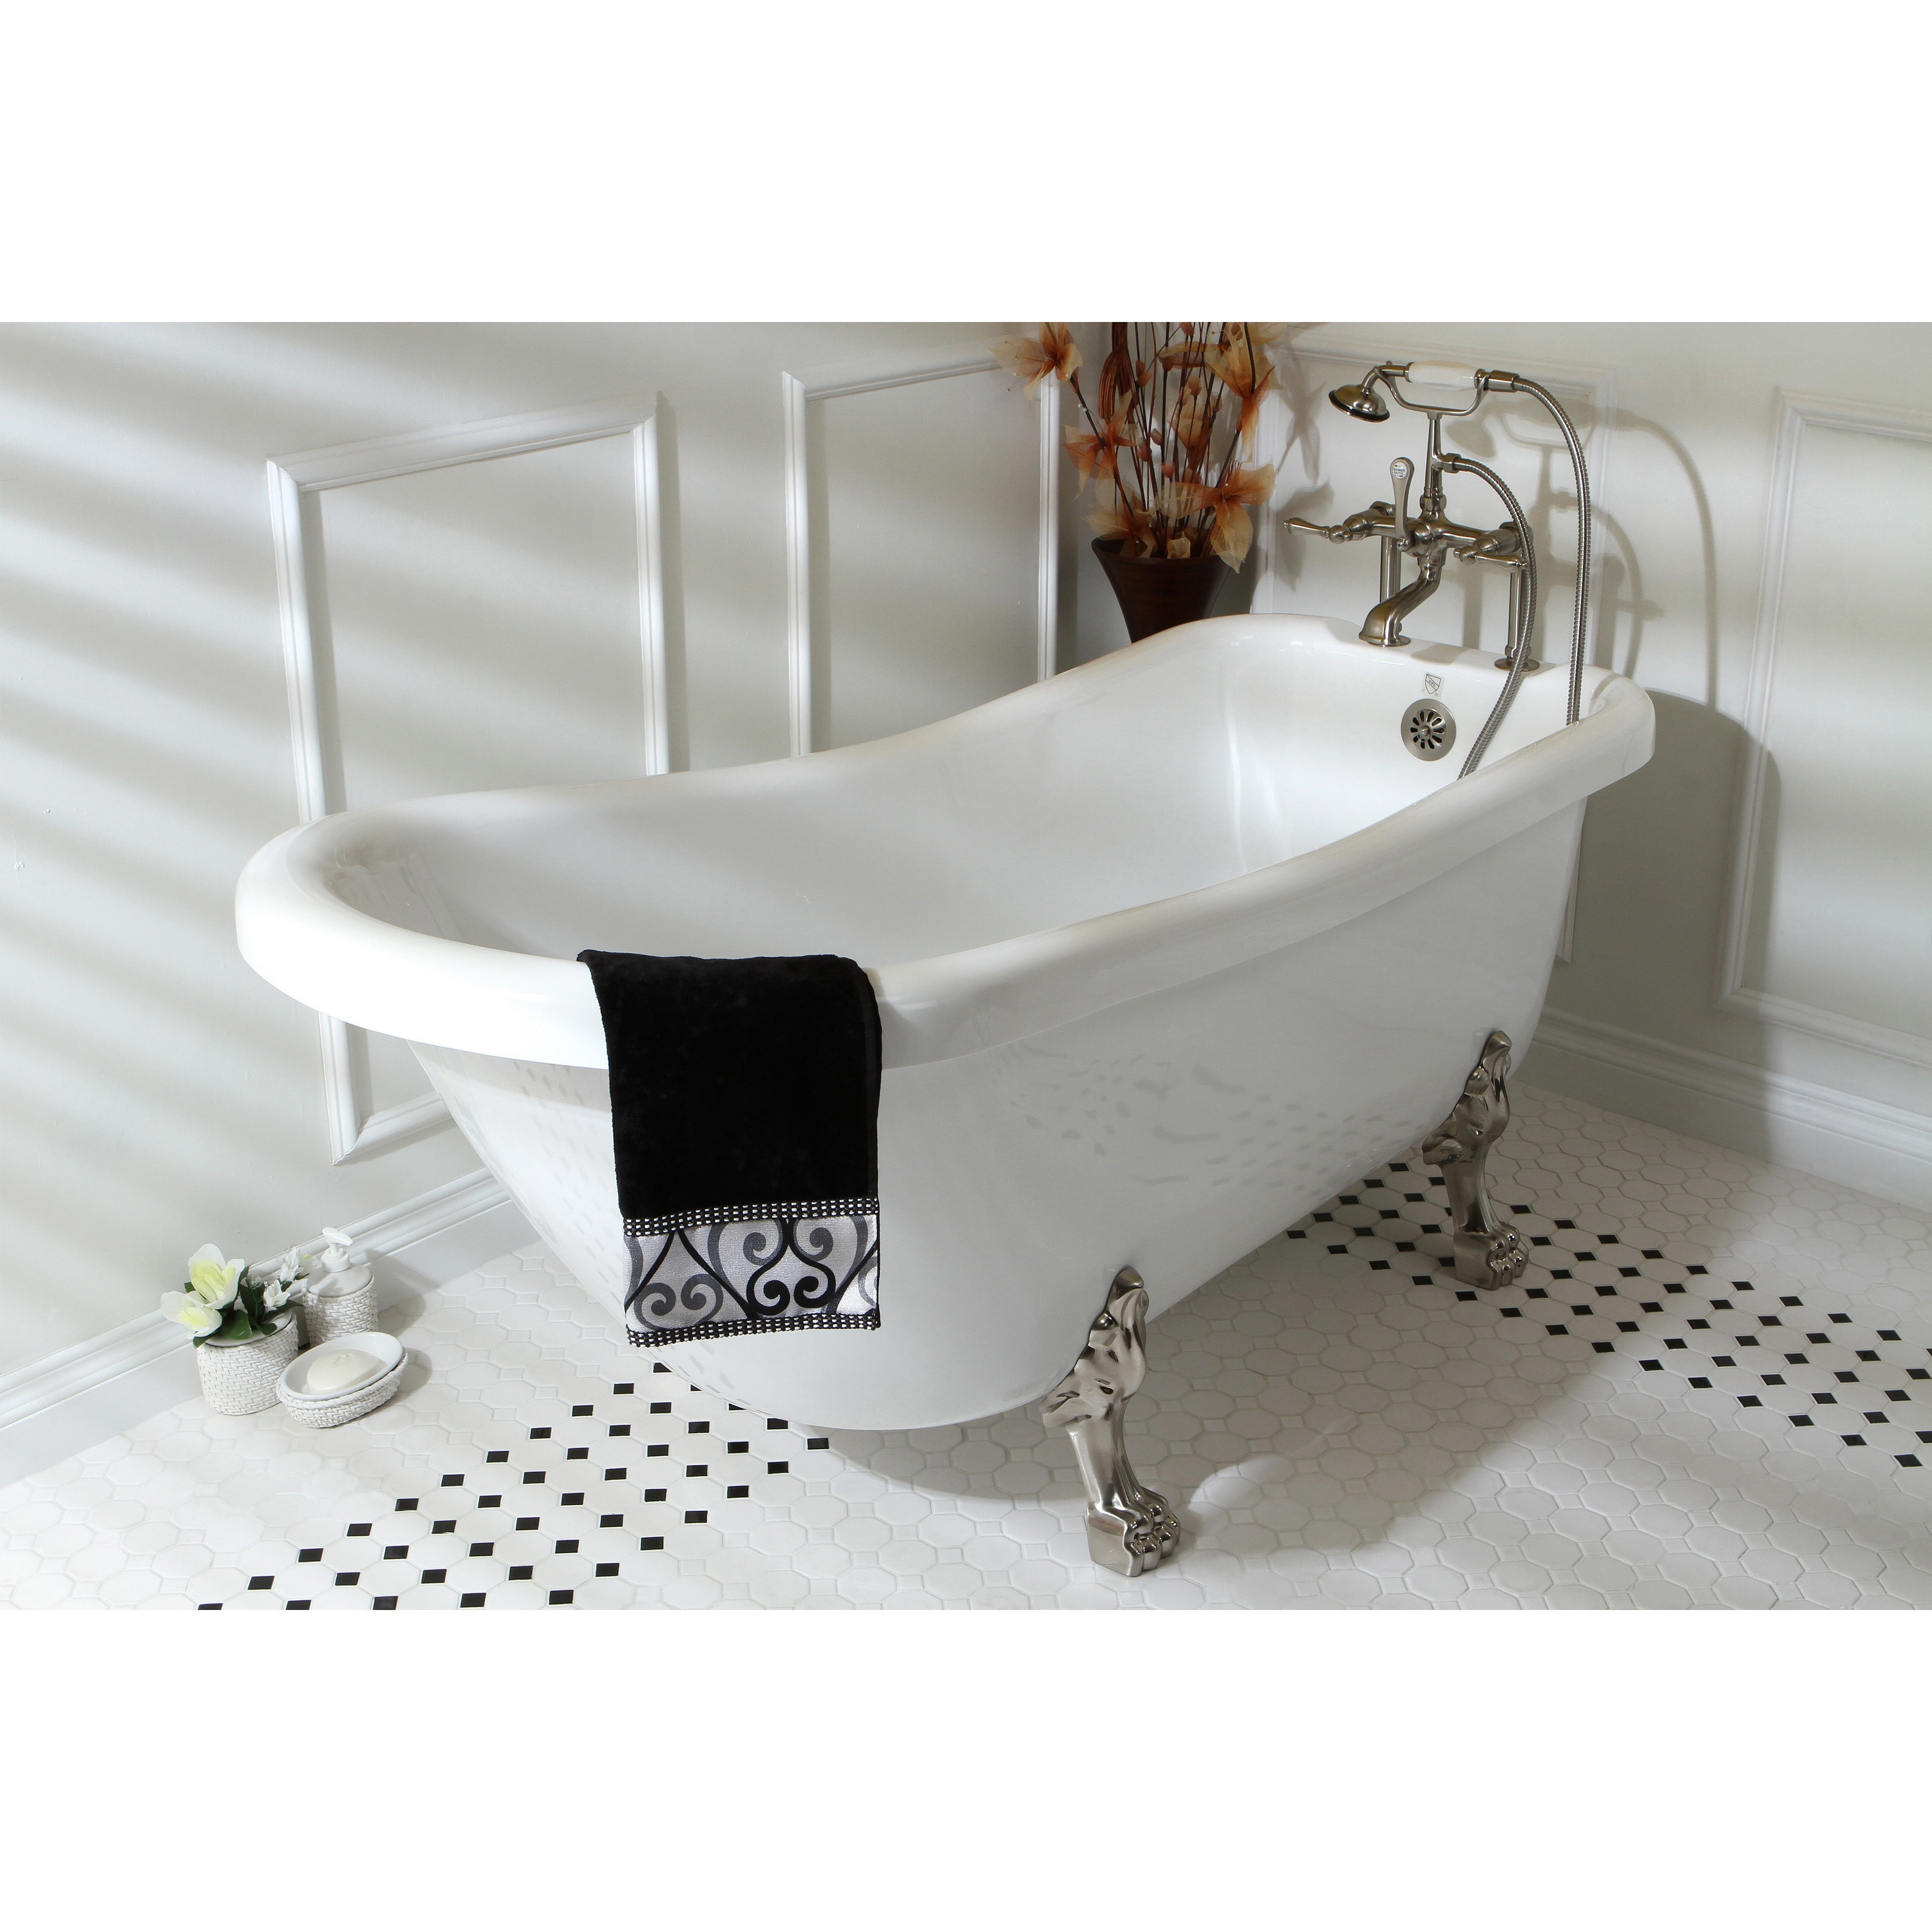 acrylic clawfoot tub package. Vintage Collection 67 Inch White Acrylic Clawfoot Slipper Tub  Free Shipping Today Overstock 13303890